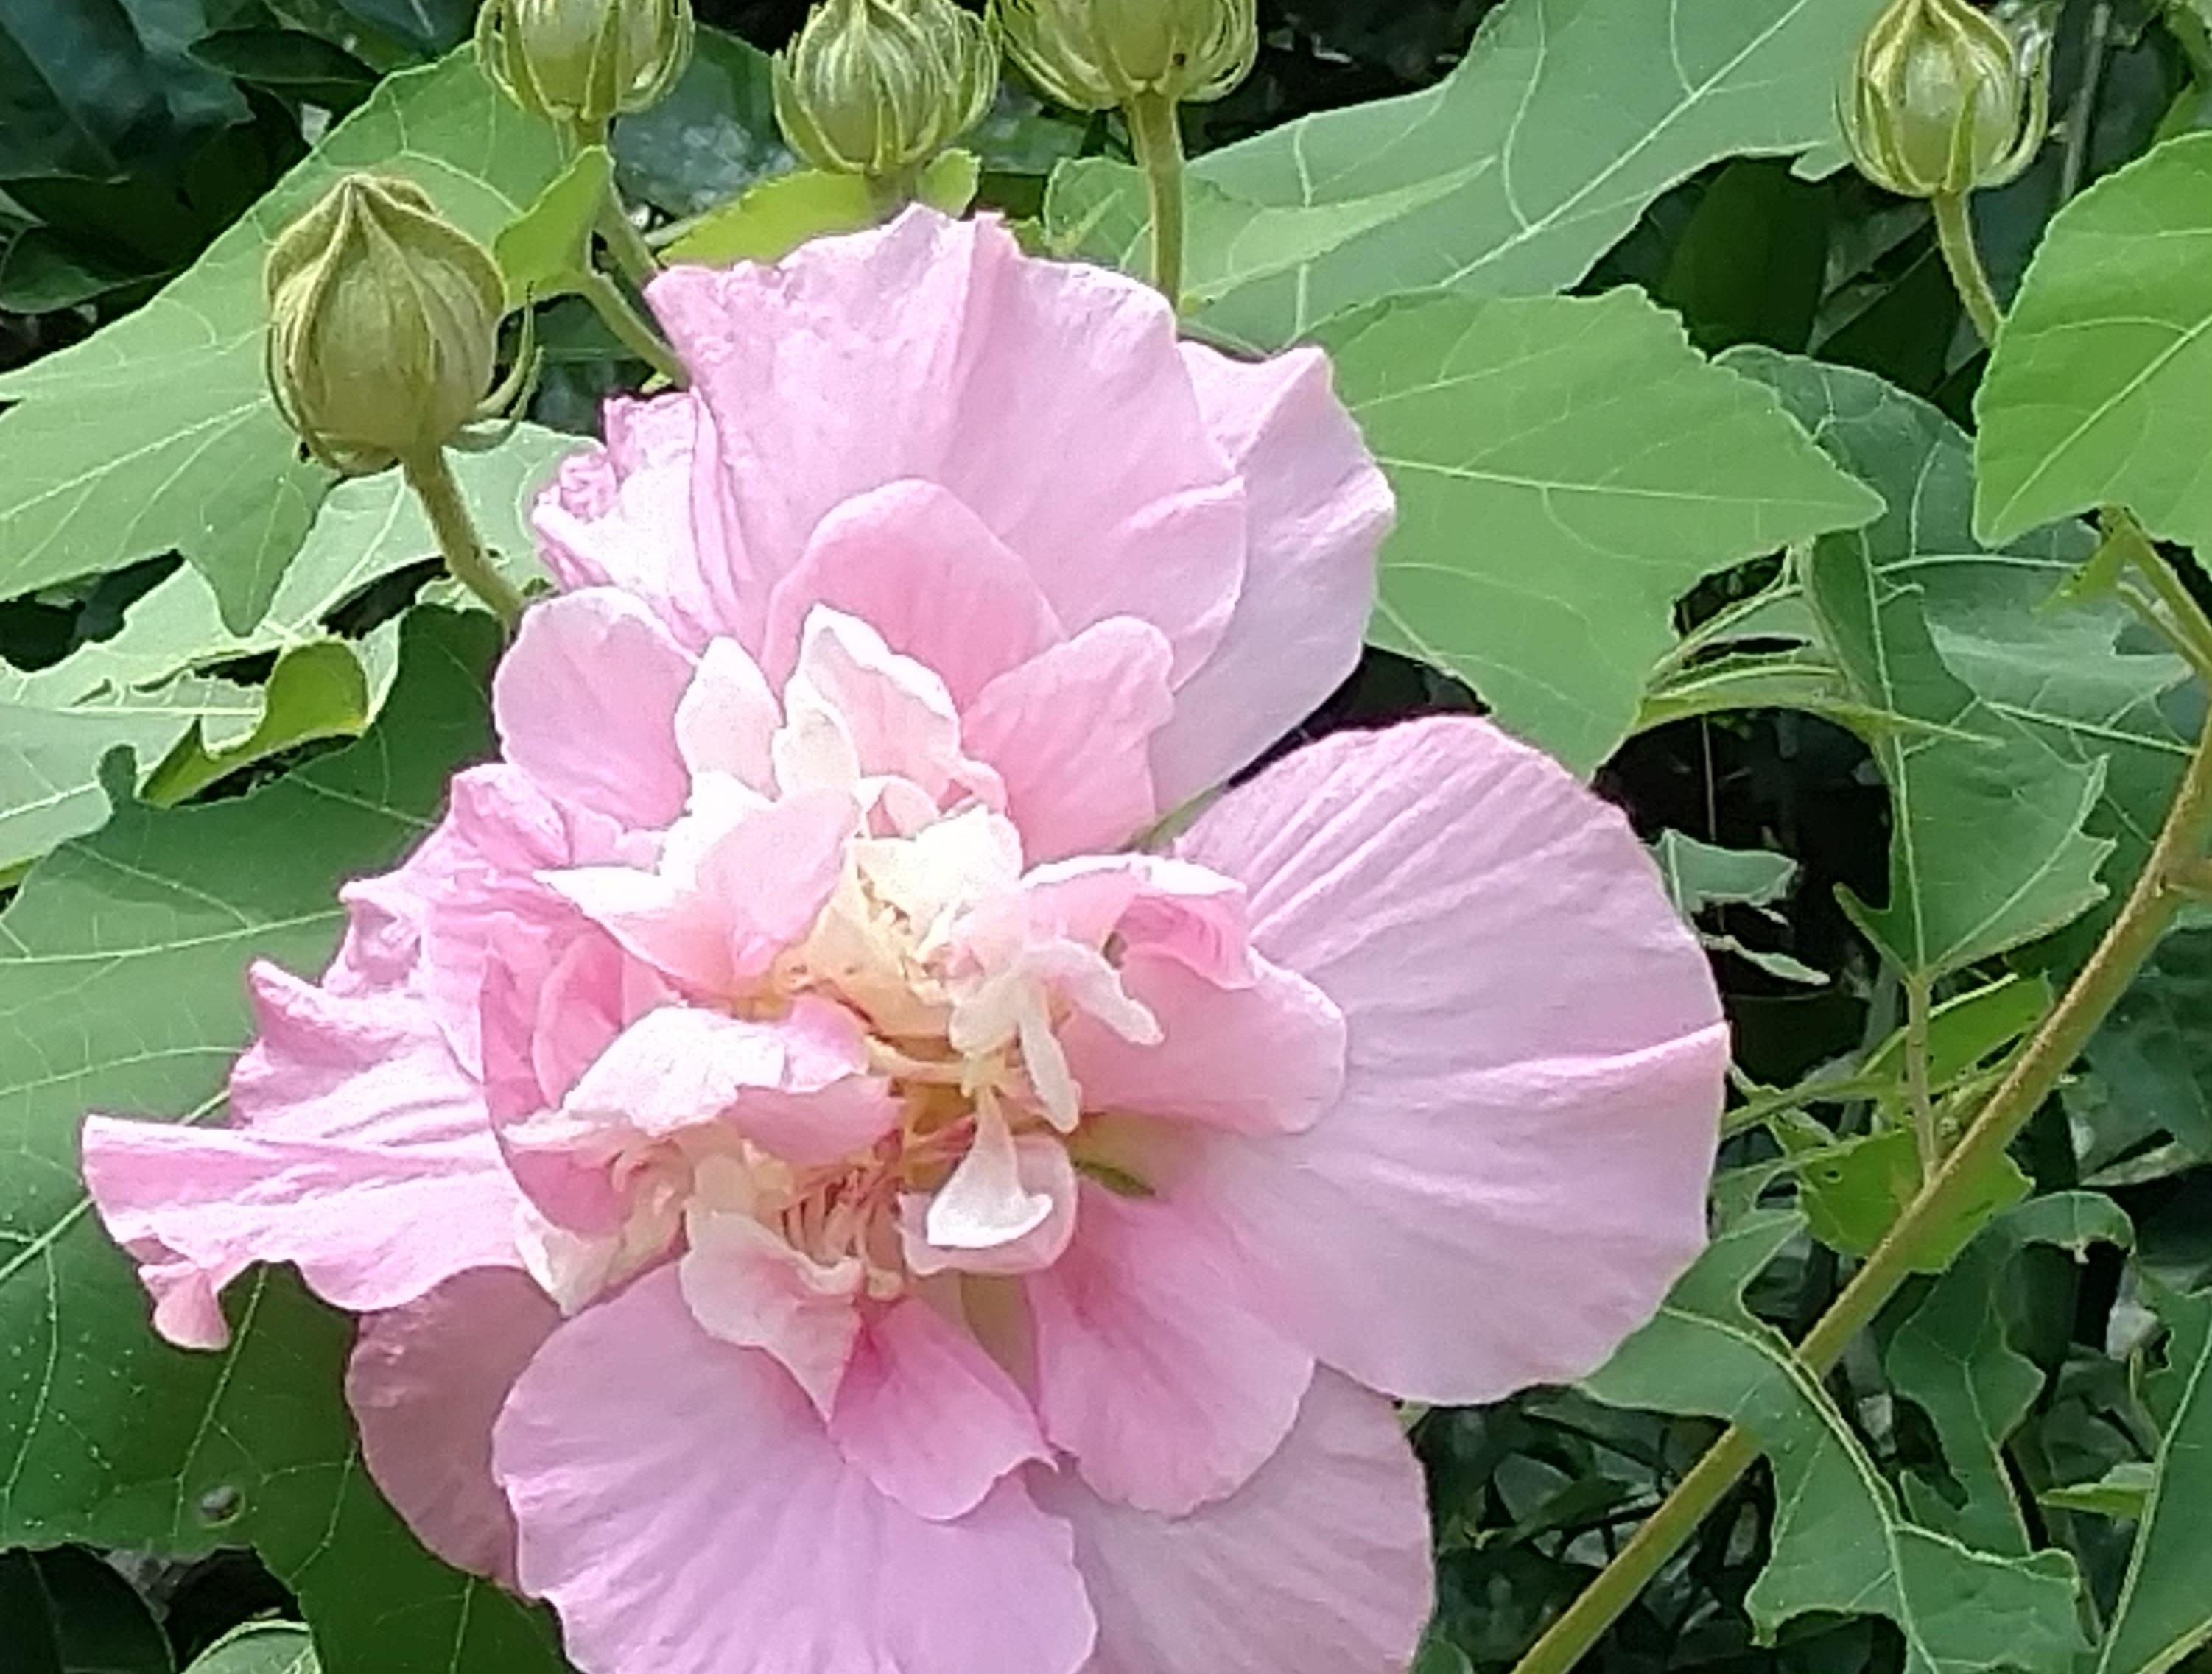 Morning Confederate Rose bloom: The Confederate Rose bloom opens a pale pink color and then darkens throughout the day to almost red when it closes.